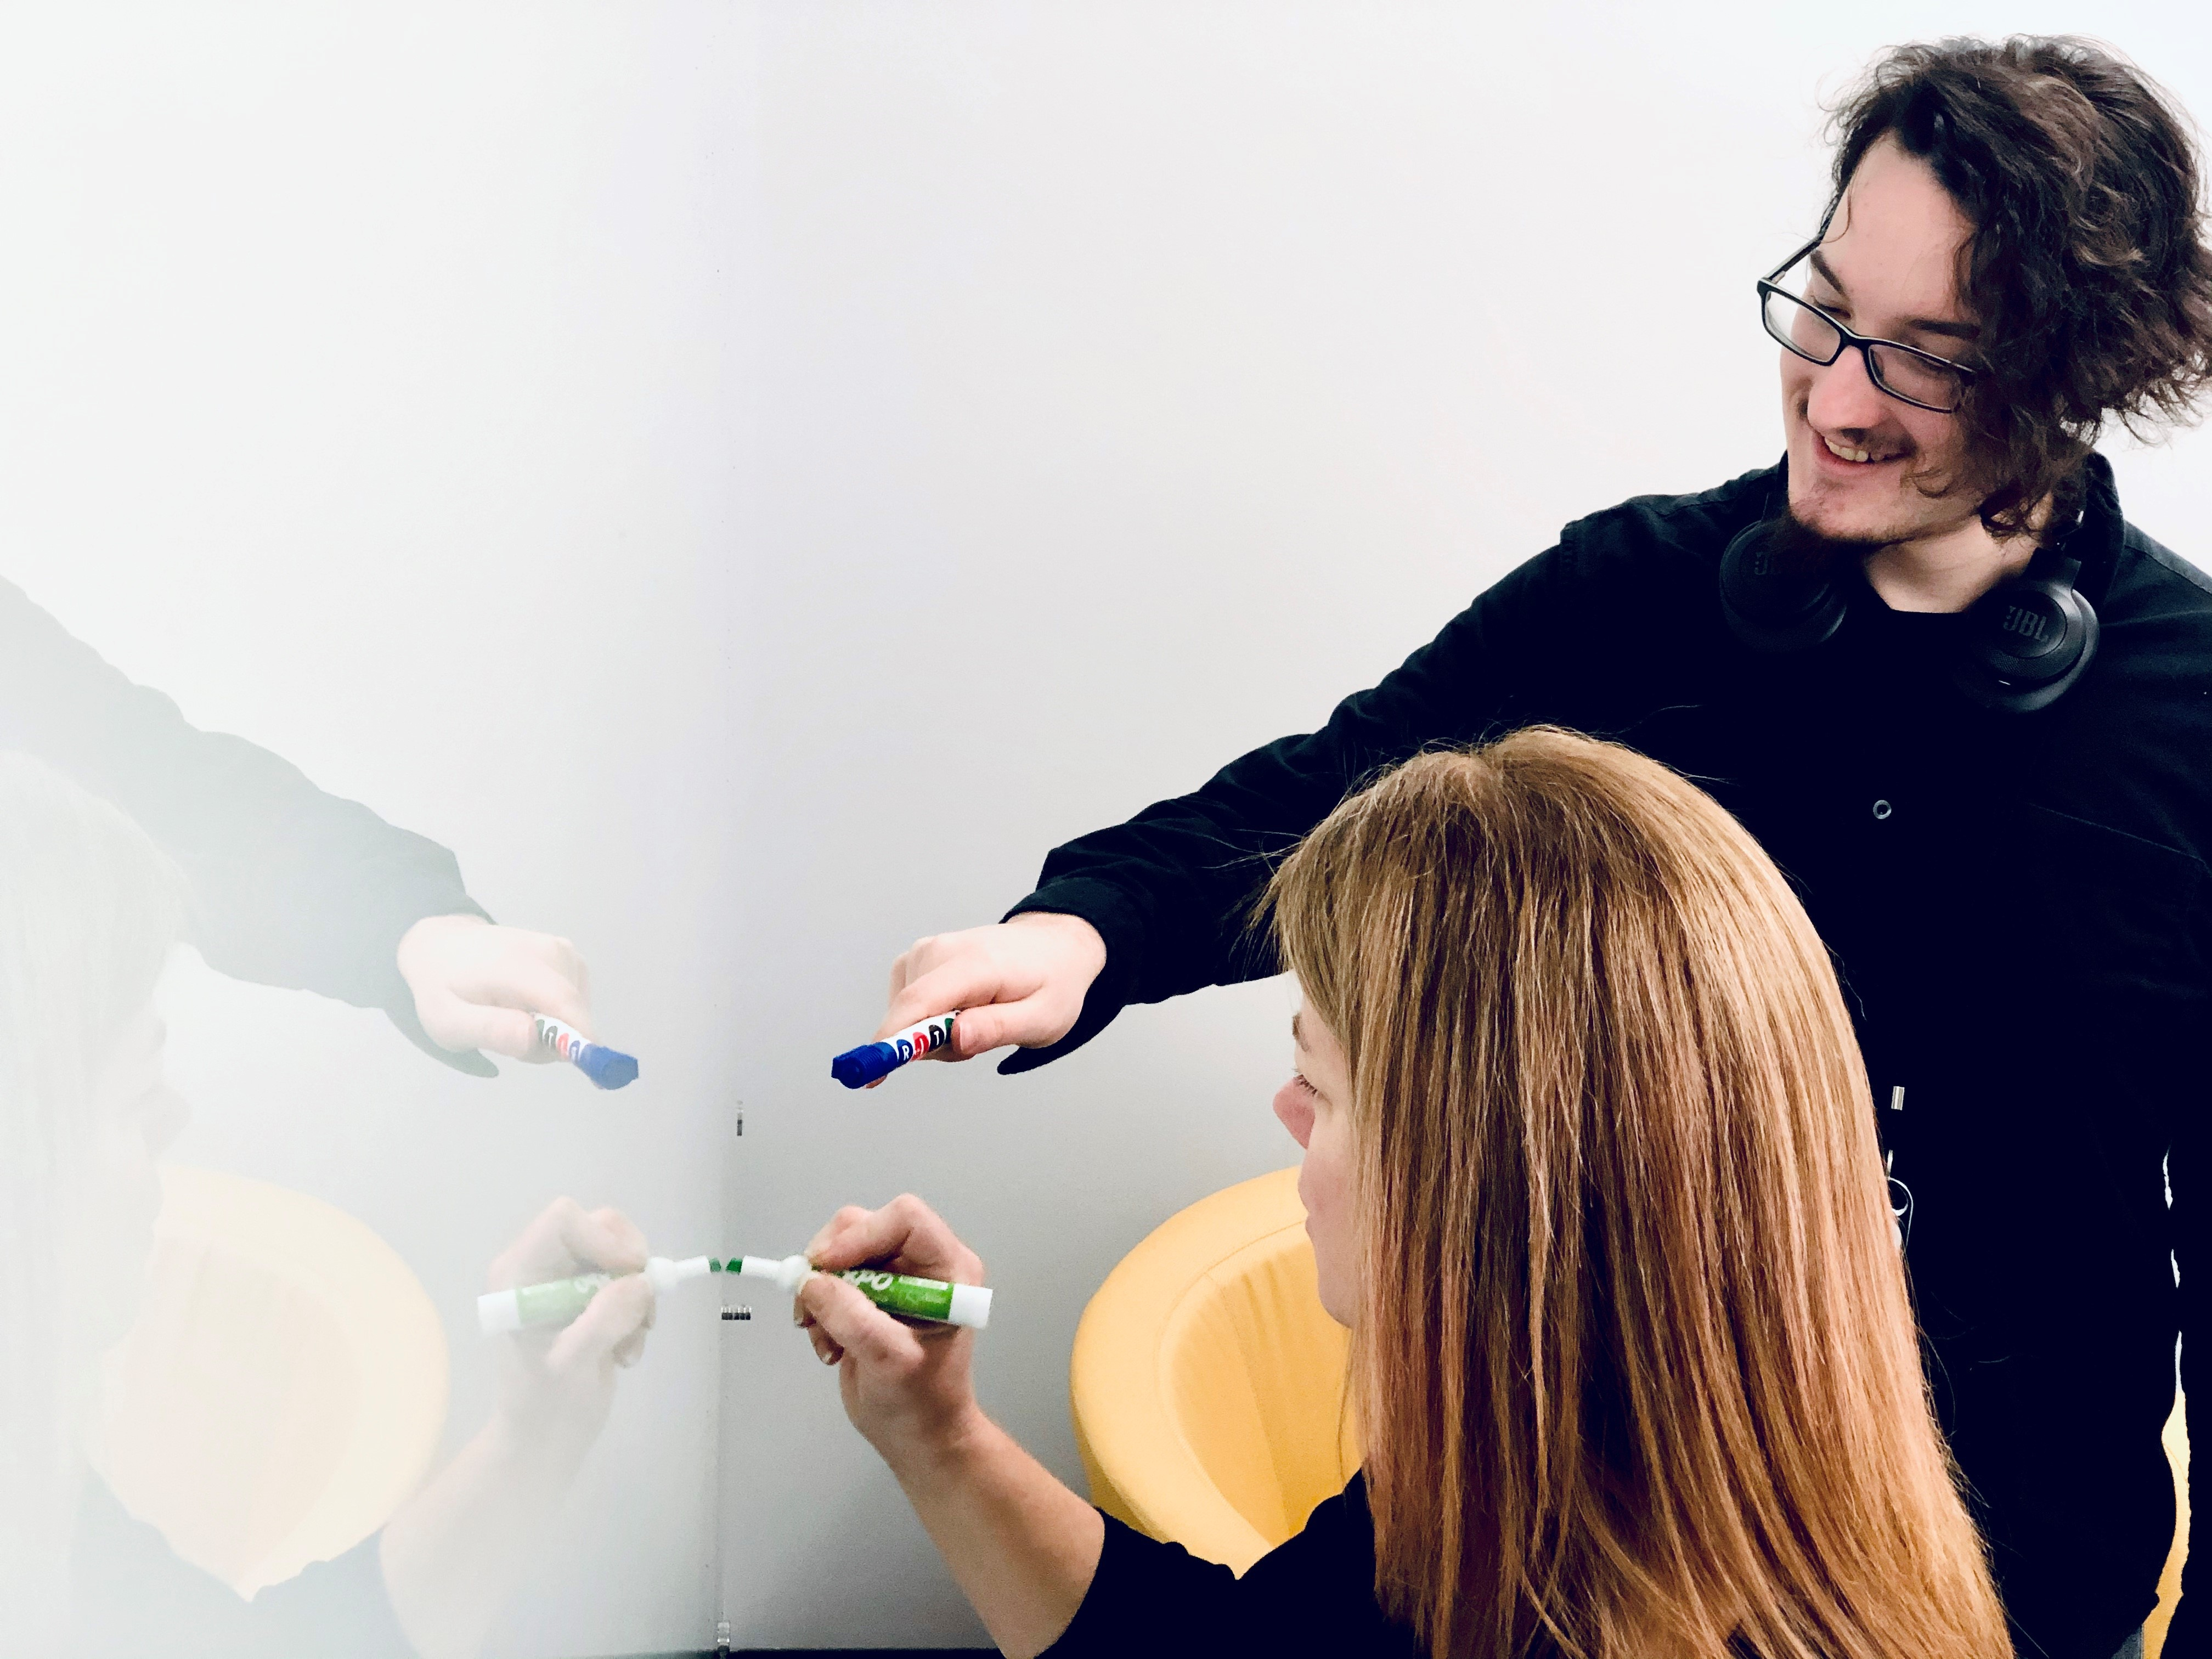 Group of employees collaborating on the whiteboard